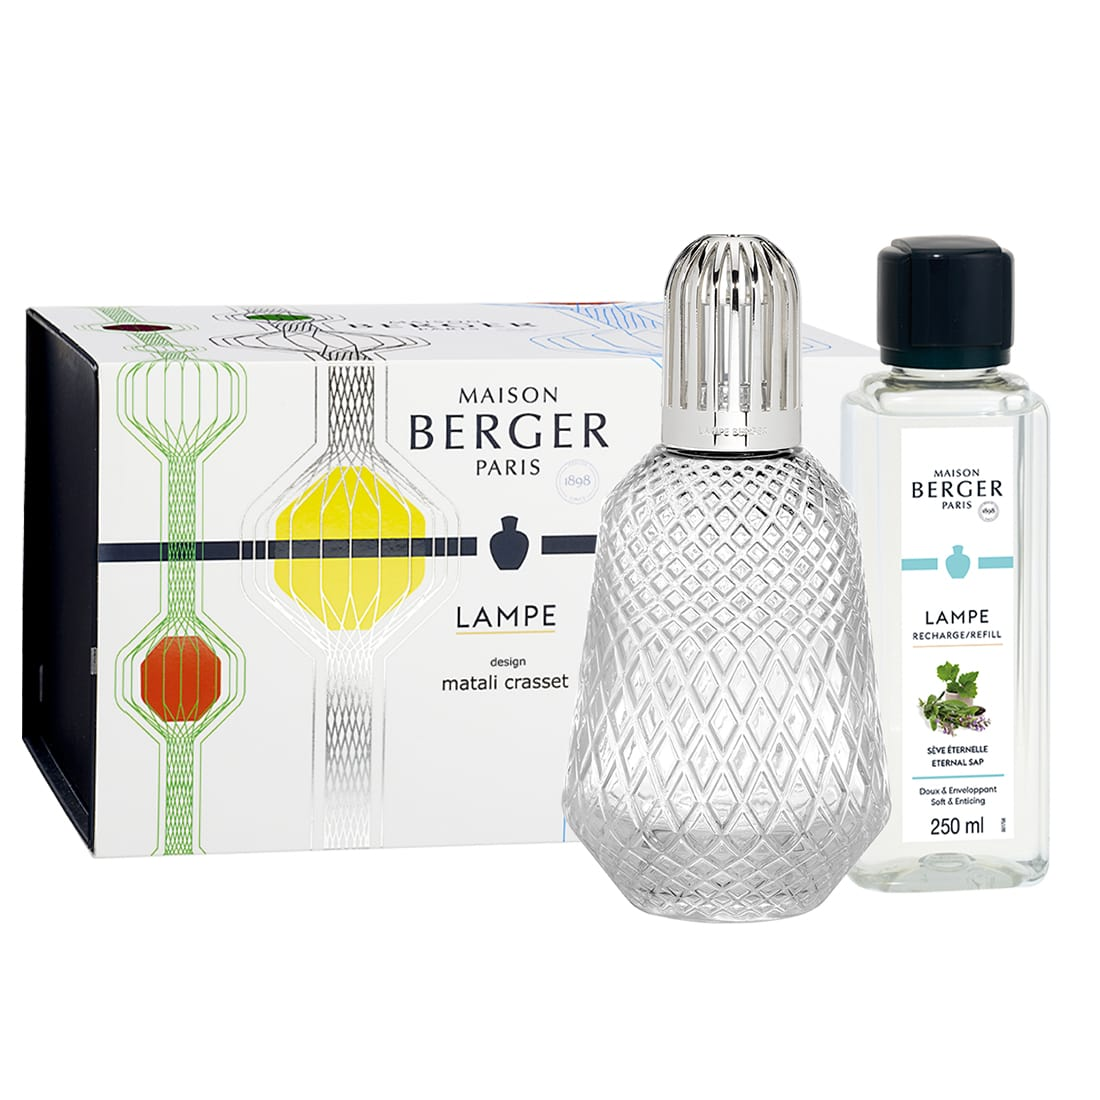 Photo de Coffret Lampe Berger Matali Crasset Tansparente